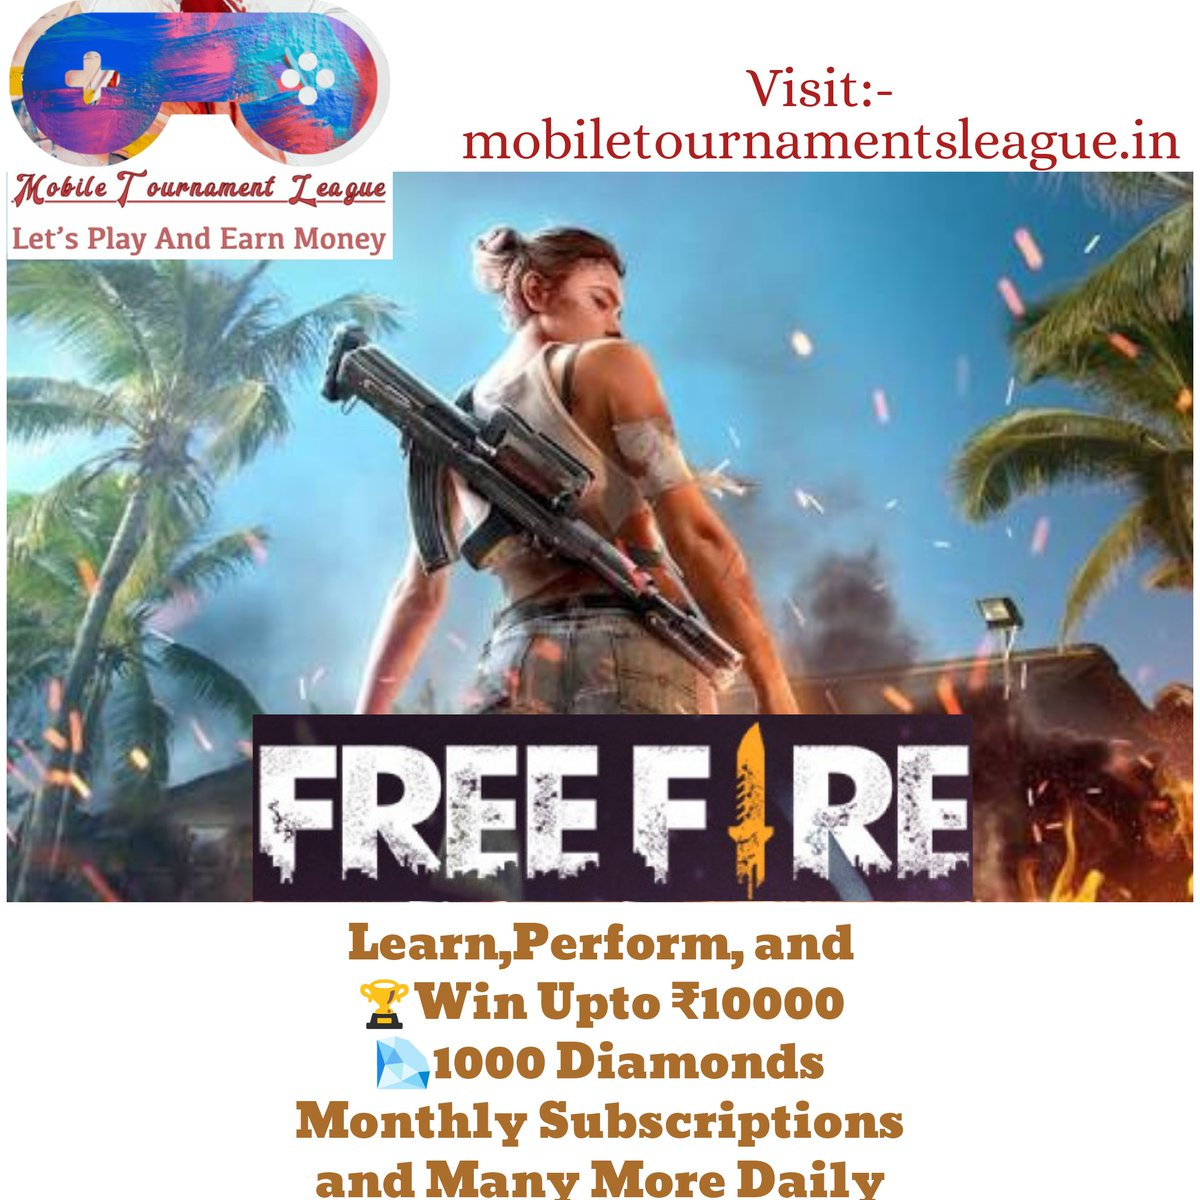 Guys, Visit Our official Website for Earning Money, and Getting DiamondsWeekly and Monthly Memberships by Playing Free* Tournaments, Giveaways, and Many More! Go And Check:-mobiletournamentsleague.in  #study #earnmoney #freefiregame #freefire #freefiregirls #freefireindiapic.twitter.com/Q9Xo8aRtnR